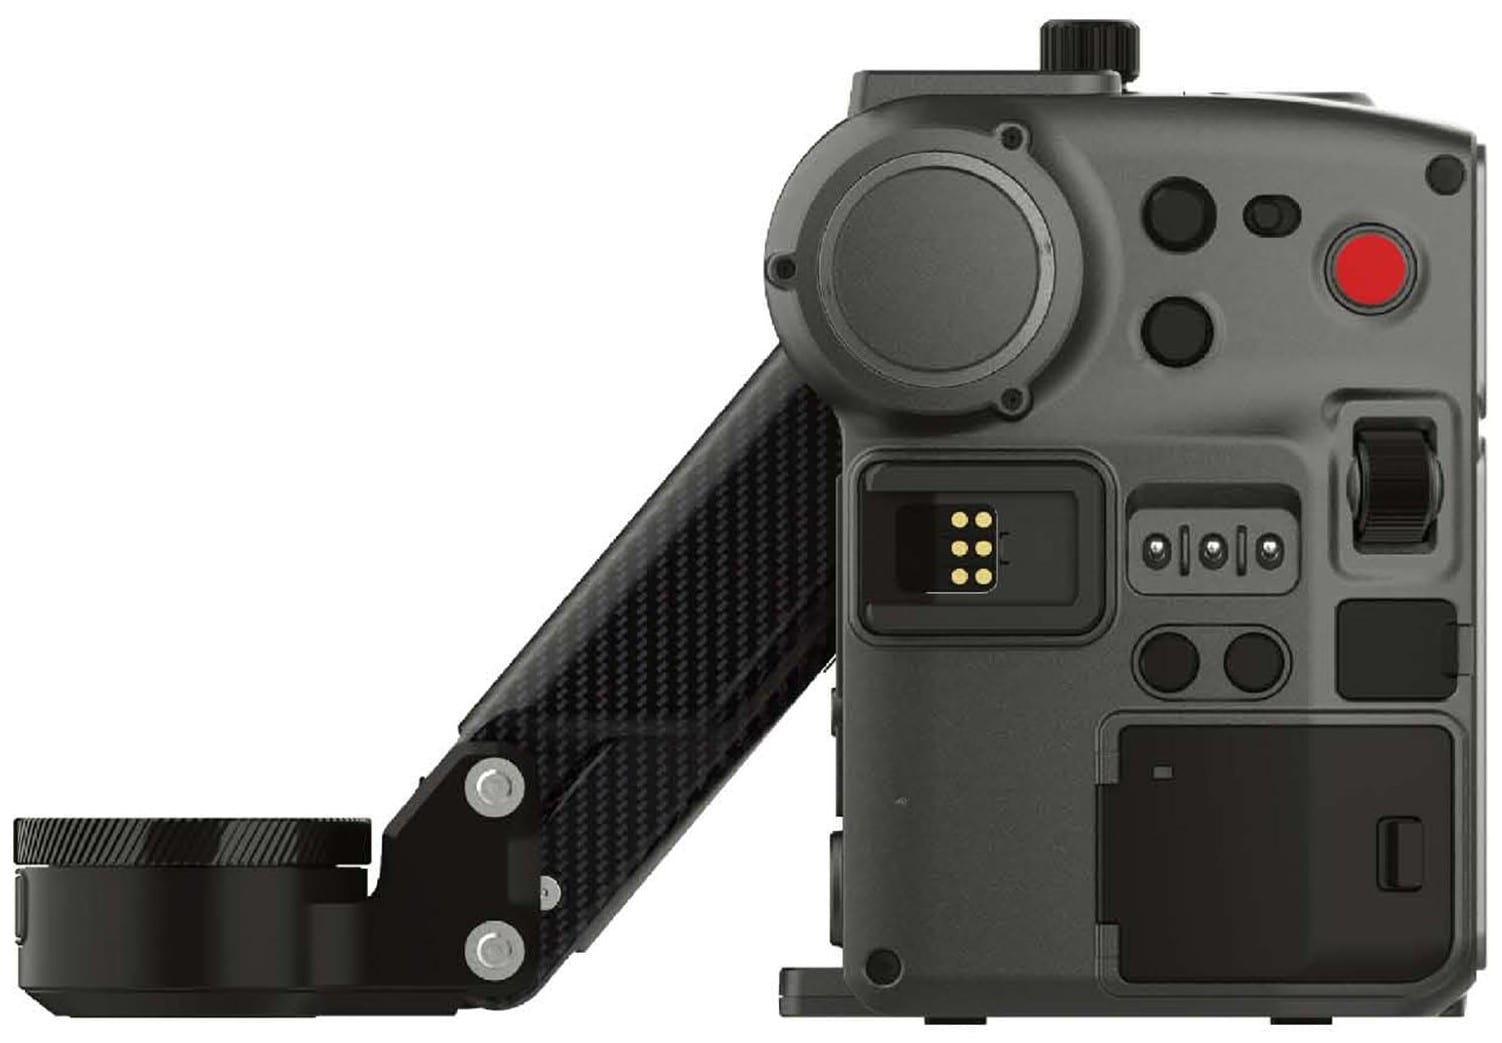 DJI X7 ground-based camera shows in leaked photos